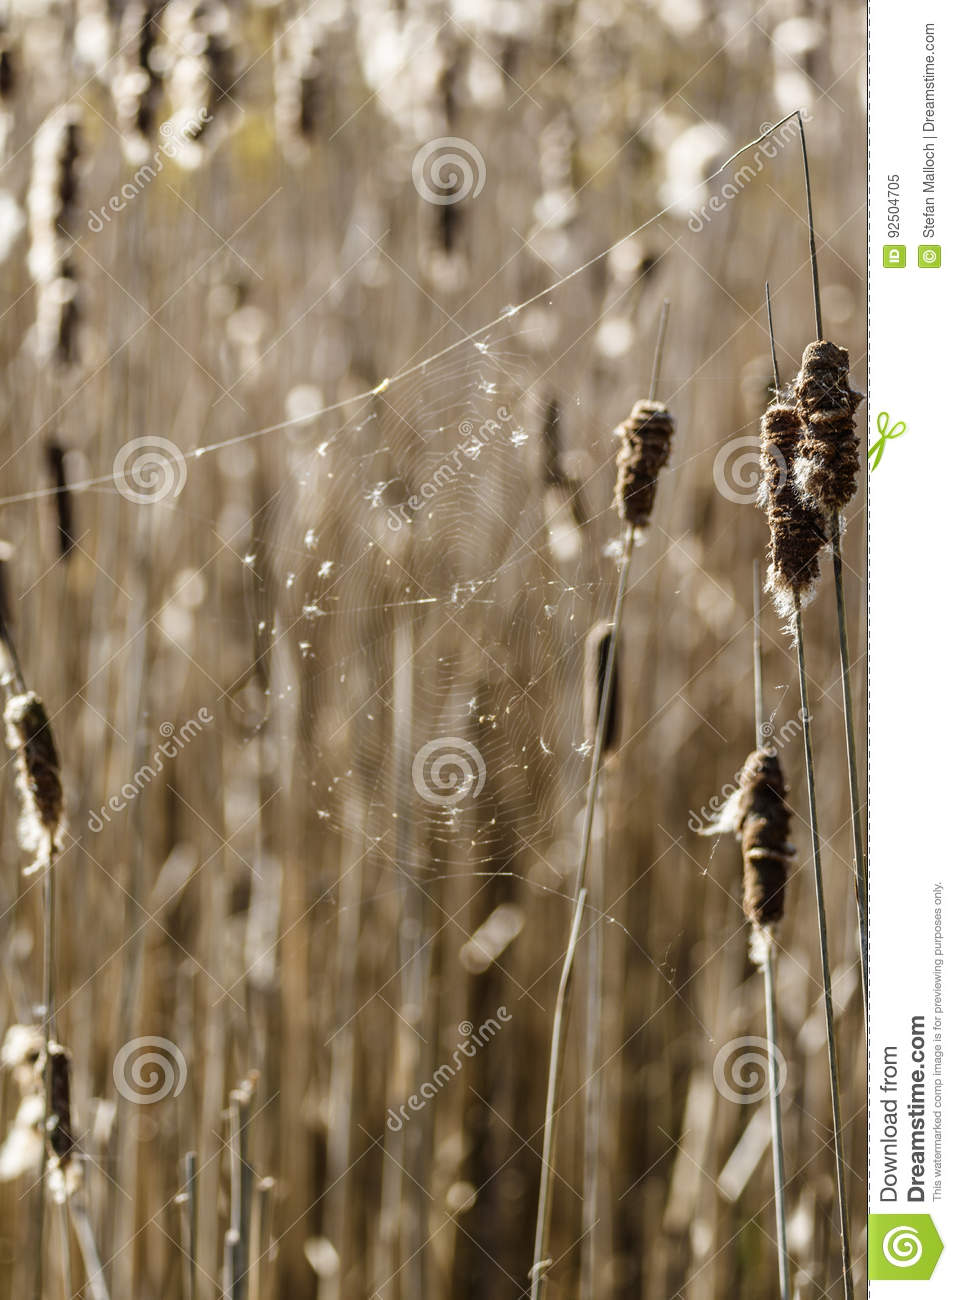 Cattails in a wetland with a spider web